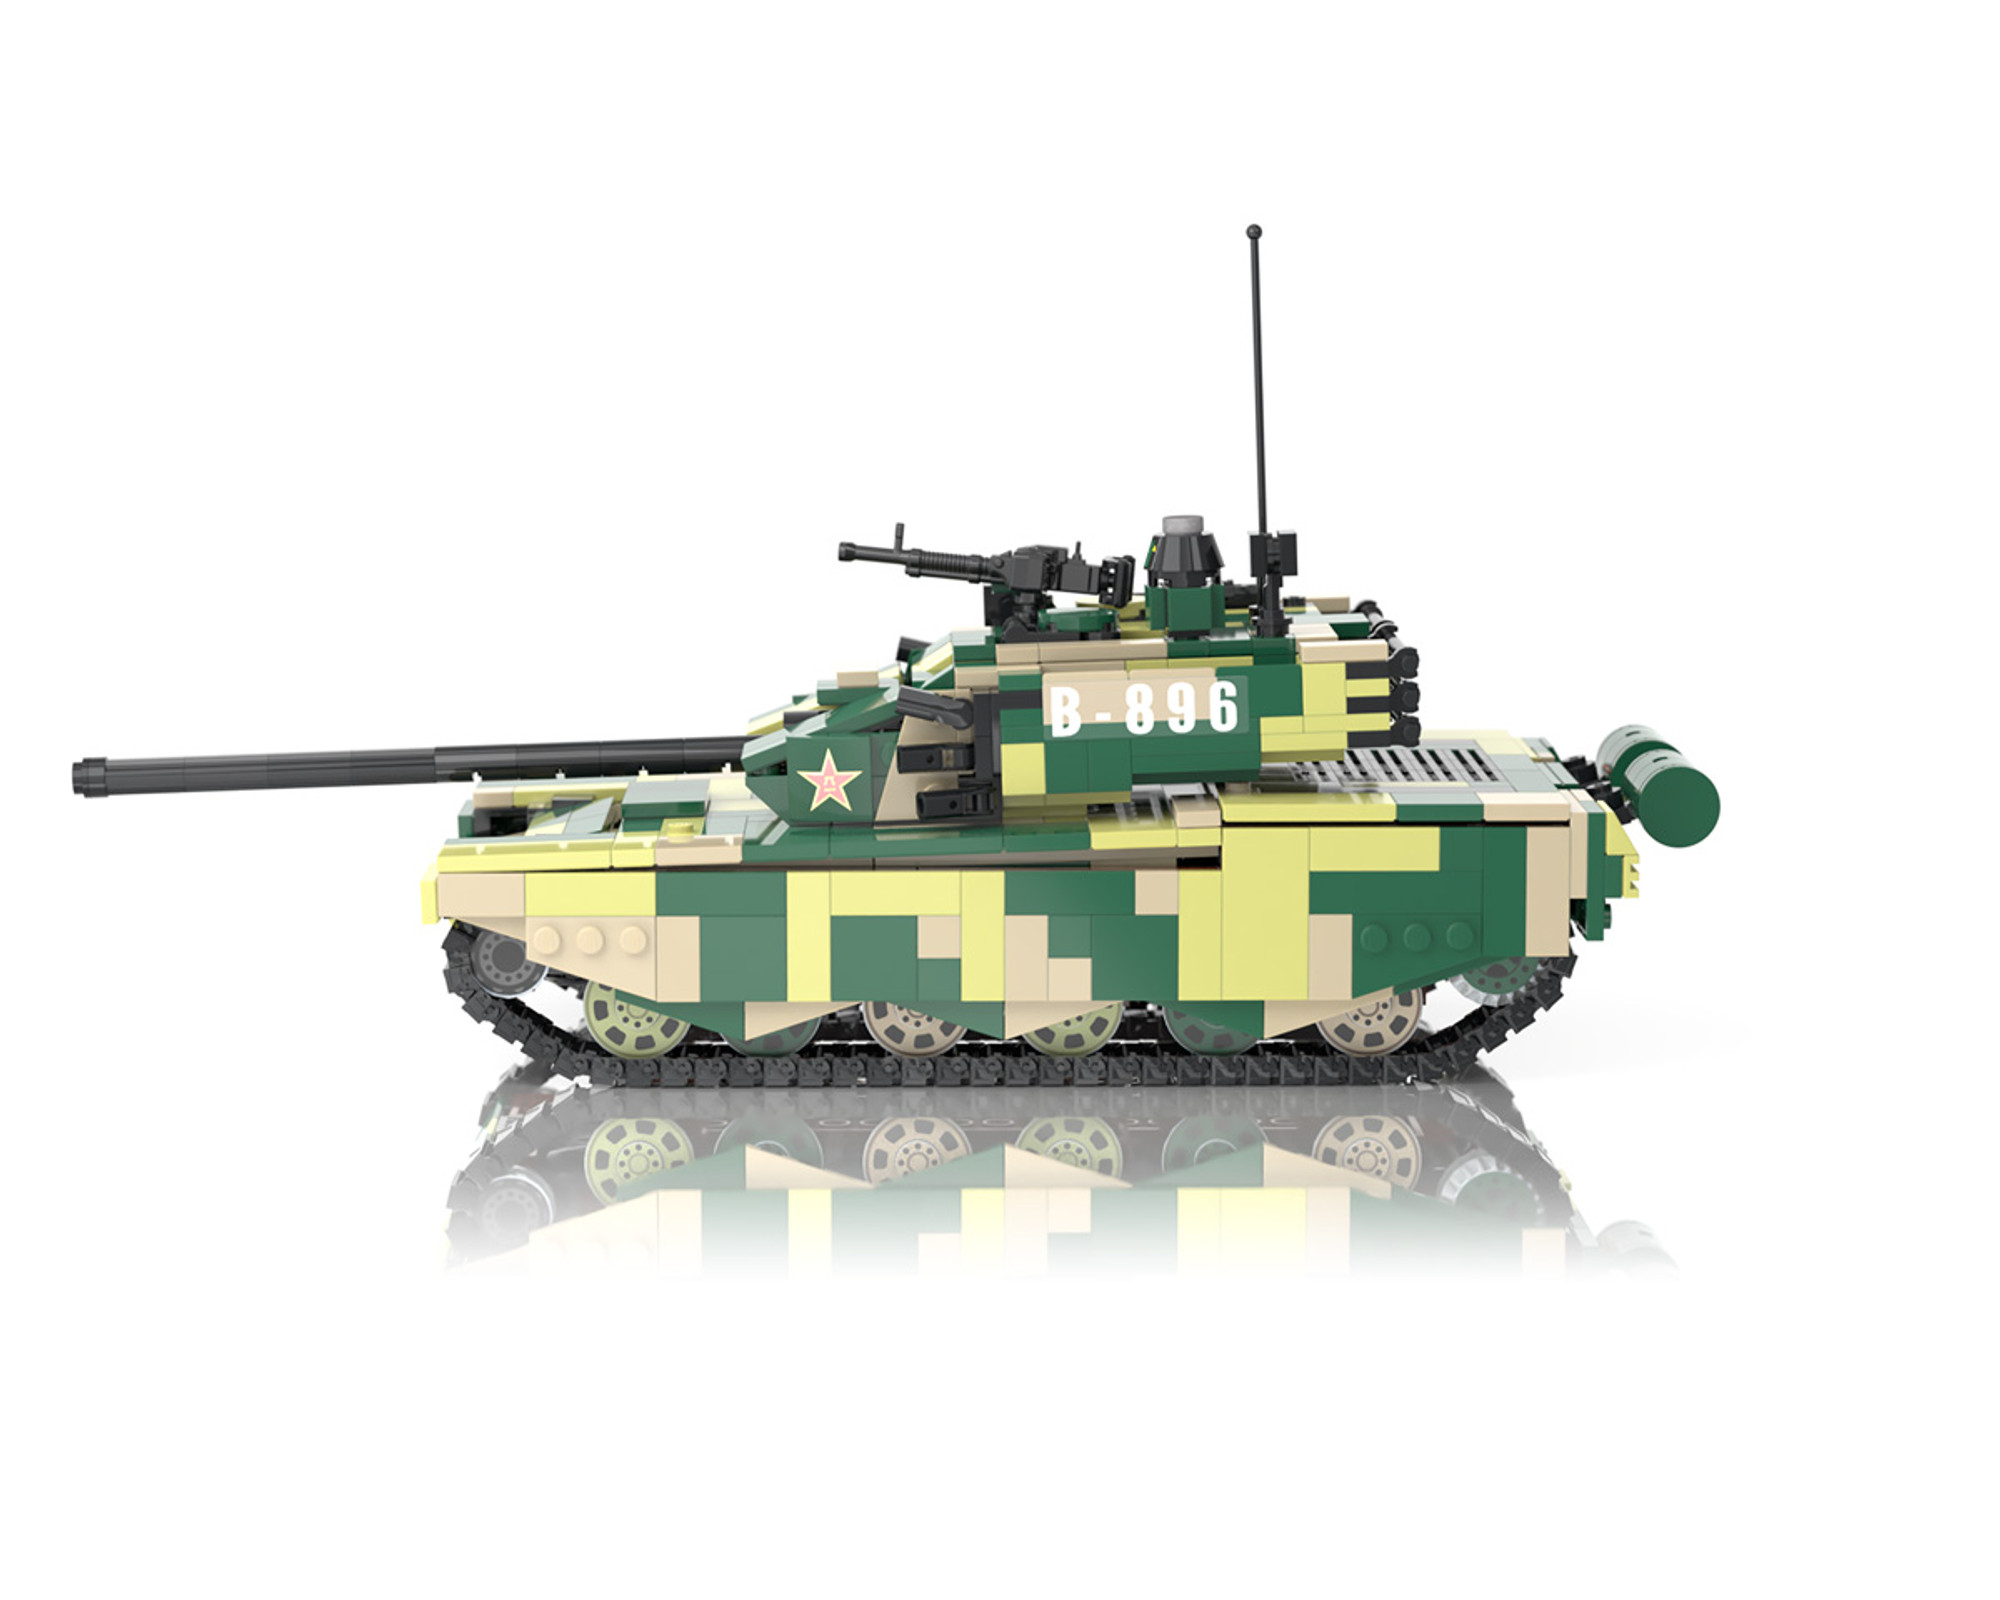 Details about  /1//50 99A Main Battle Tank Aromred Car Metal Vehicle Static KIT Collection Model